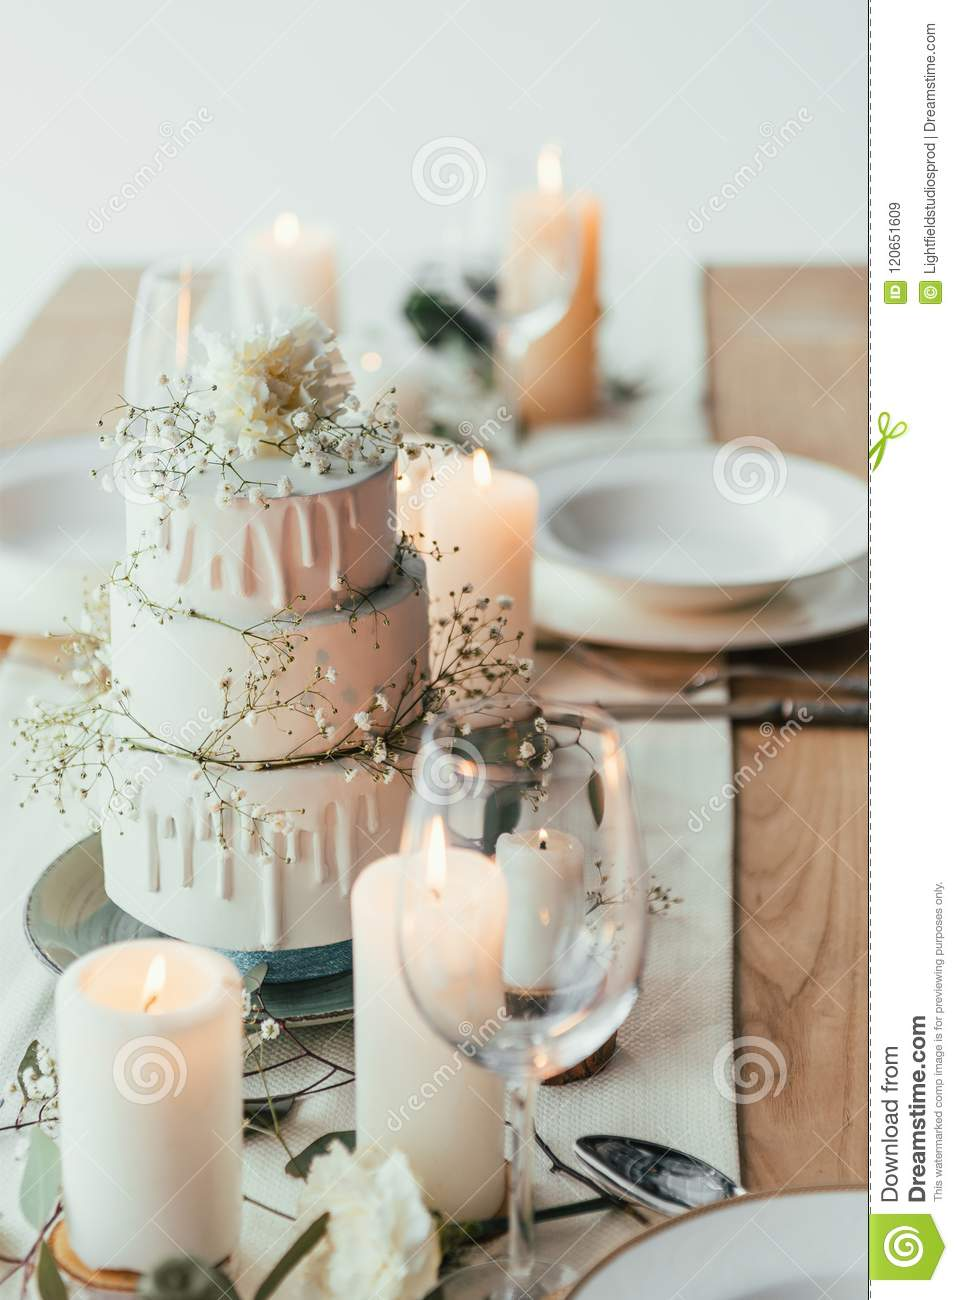 close up view of stylish table setting with candles and wedding cake